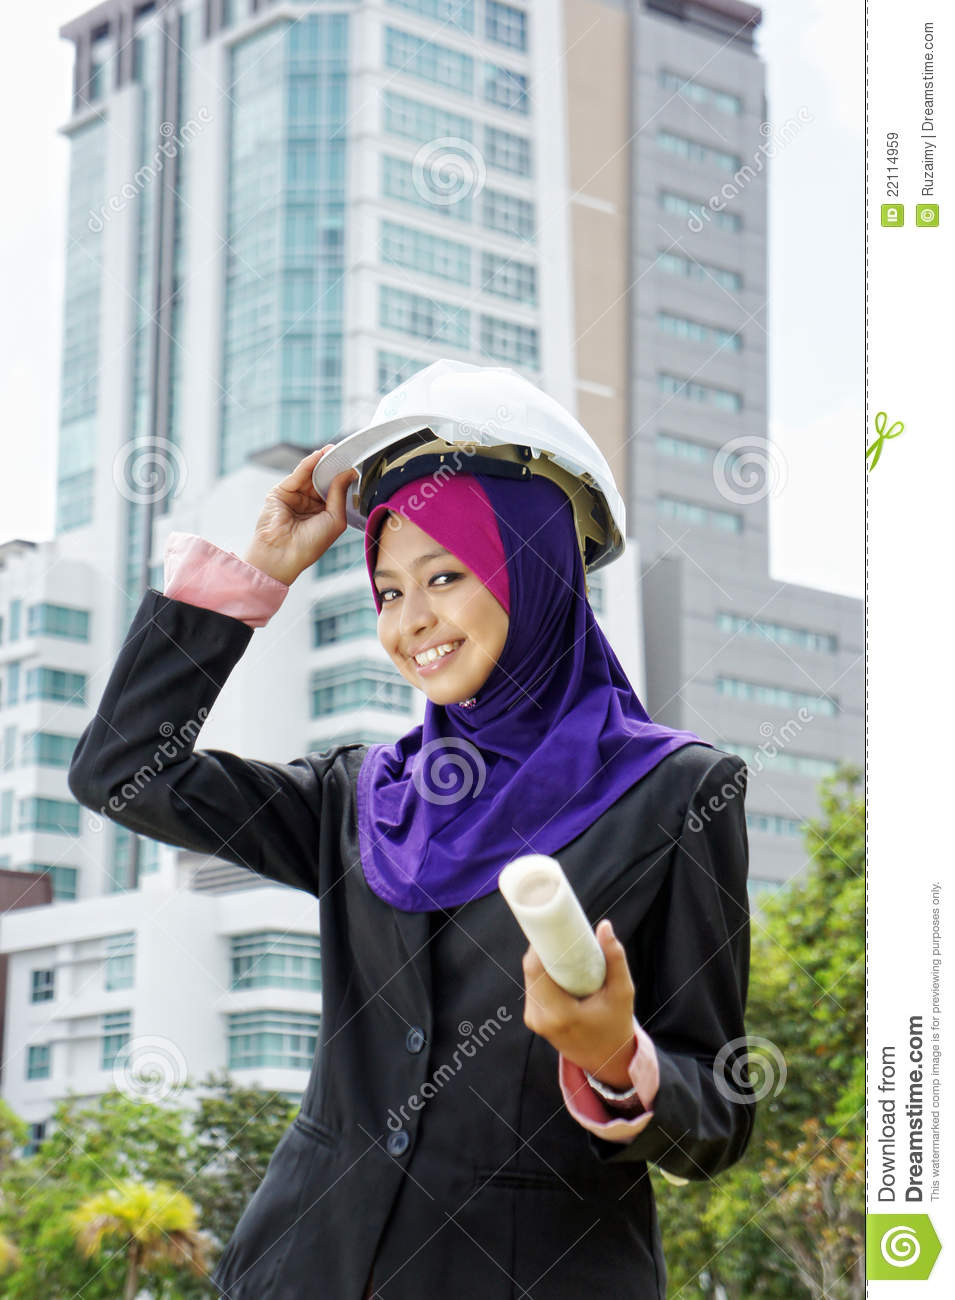 streeter single muslim girls Register for free today to meet singles on our muslim dating site at eharmony, we take pride in matching you with the most compatible people in your area.